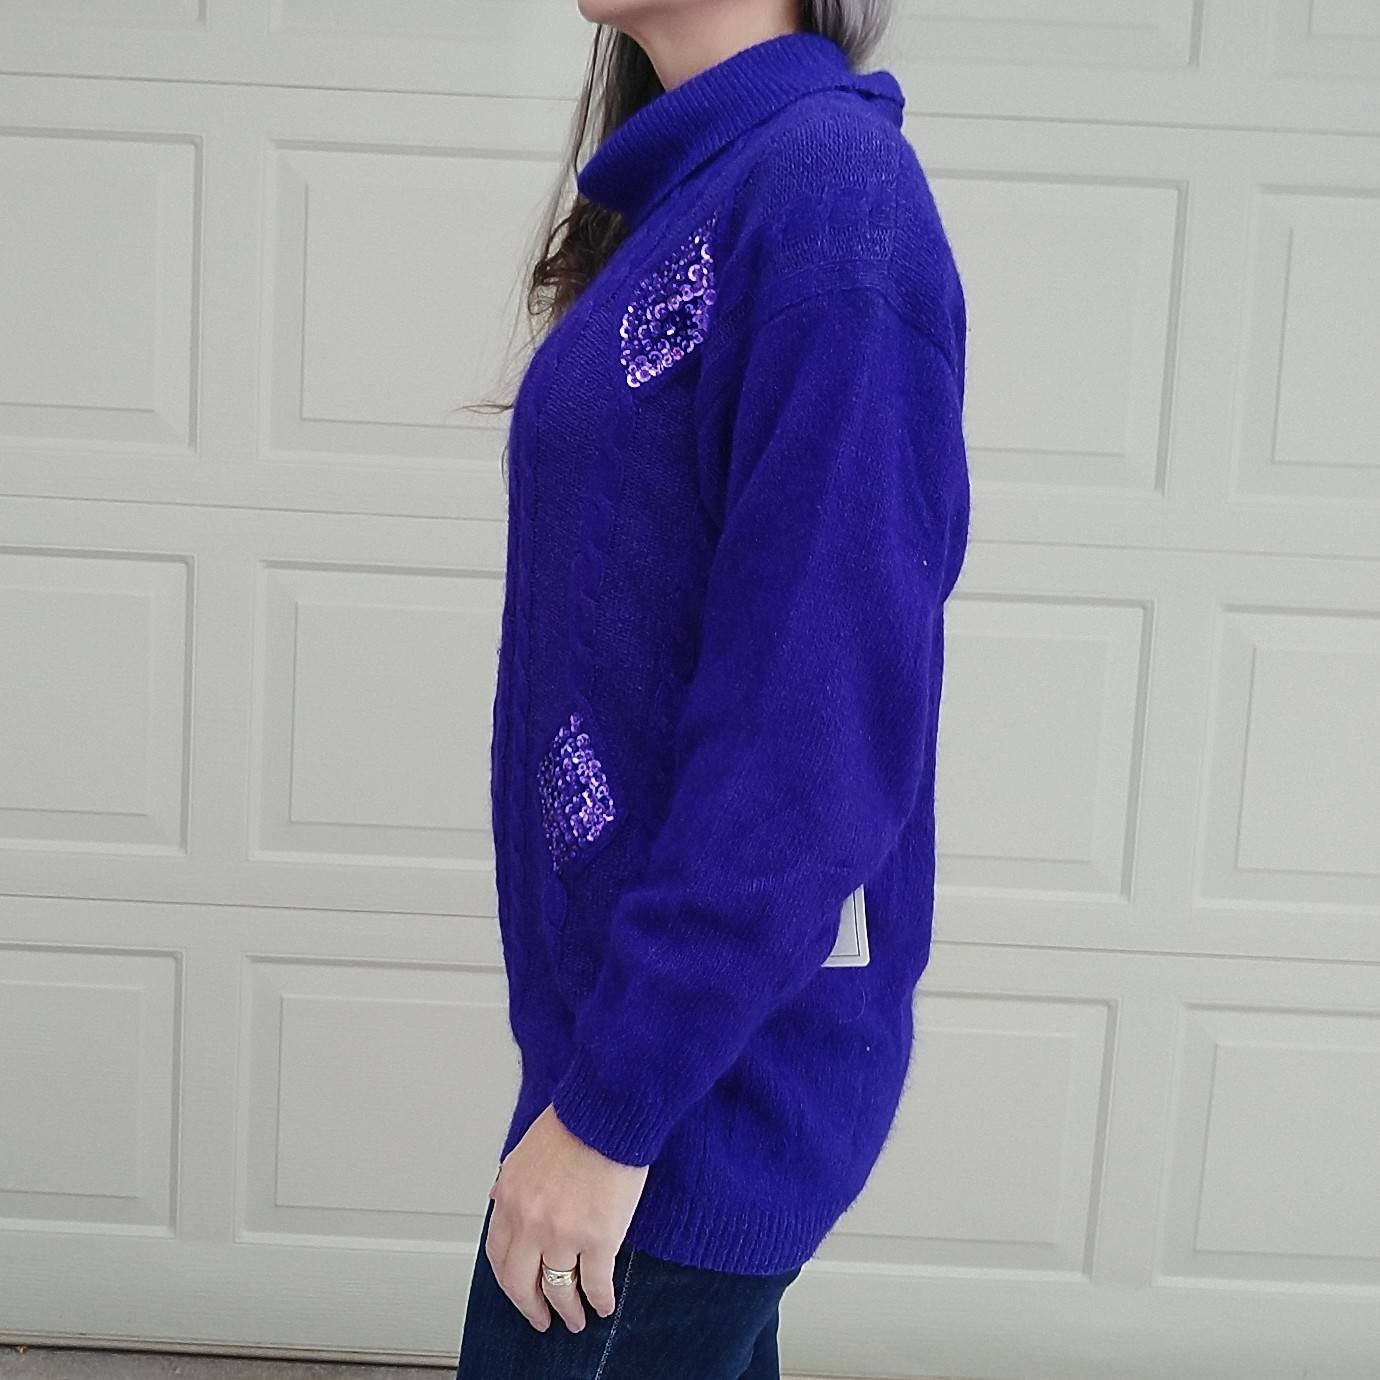 deadstock 1990s PURPLE TURTLENECK SWEATER 90s S M (K5)